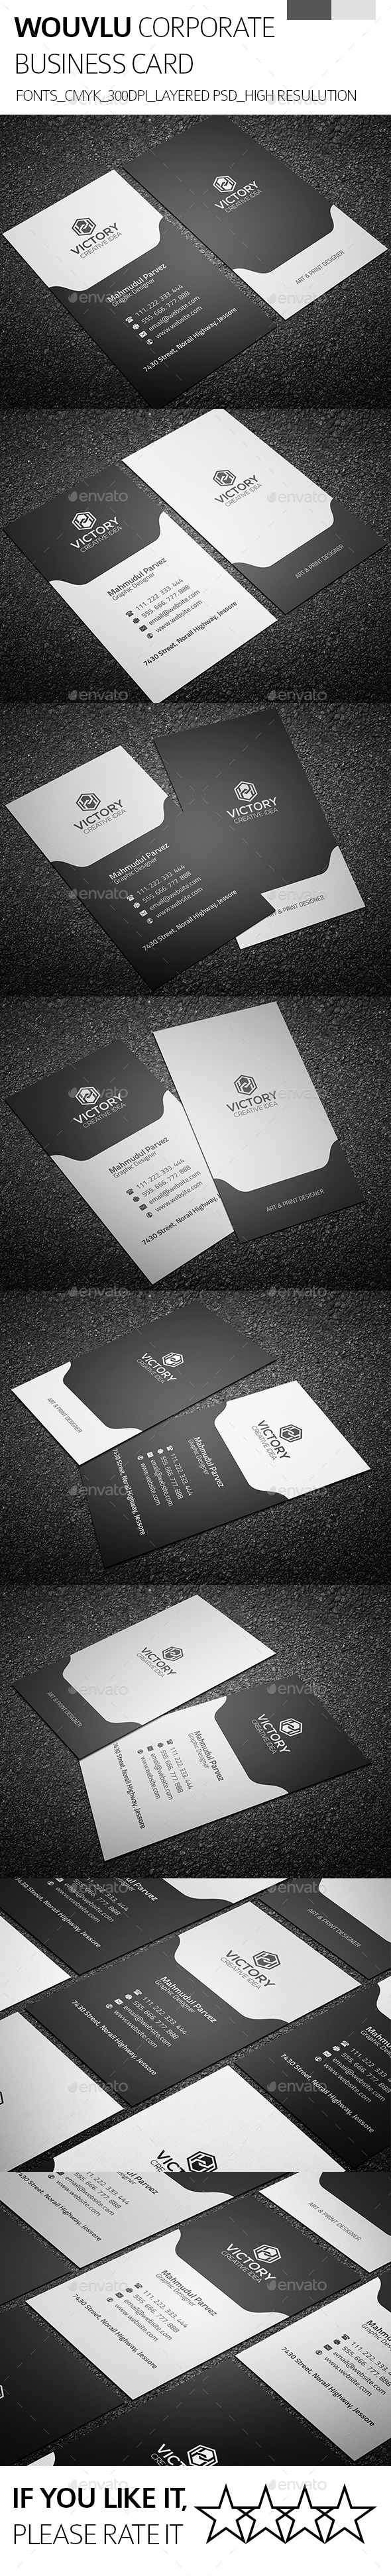 GraphicRiver Wouvlu & Corporate Business Card 9008587